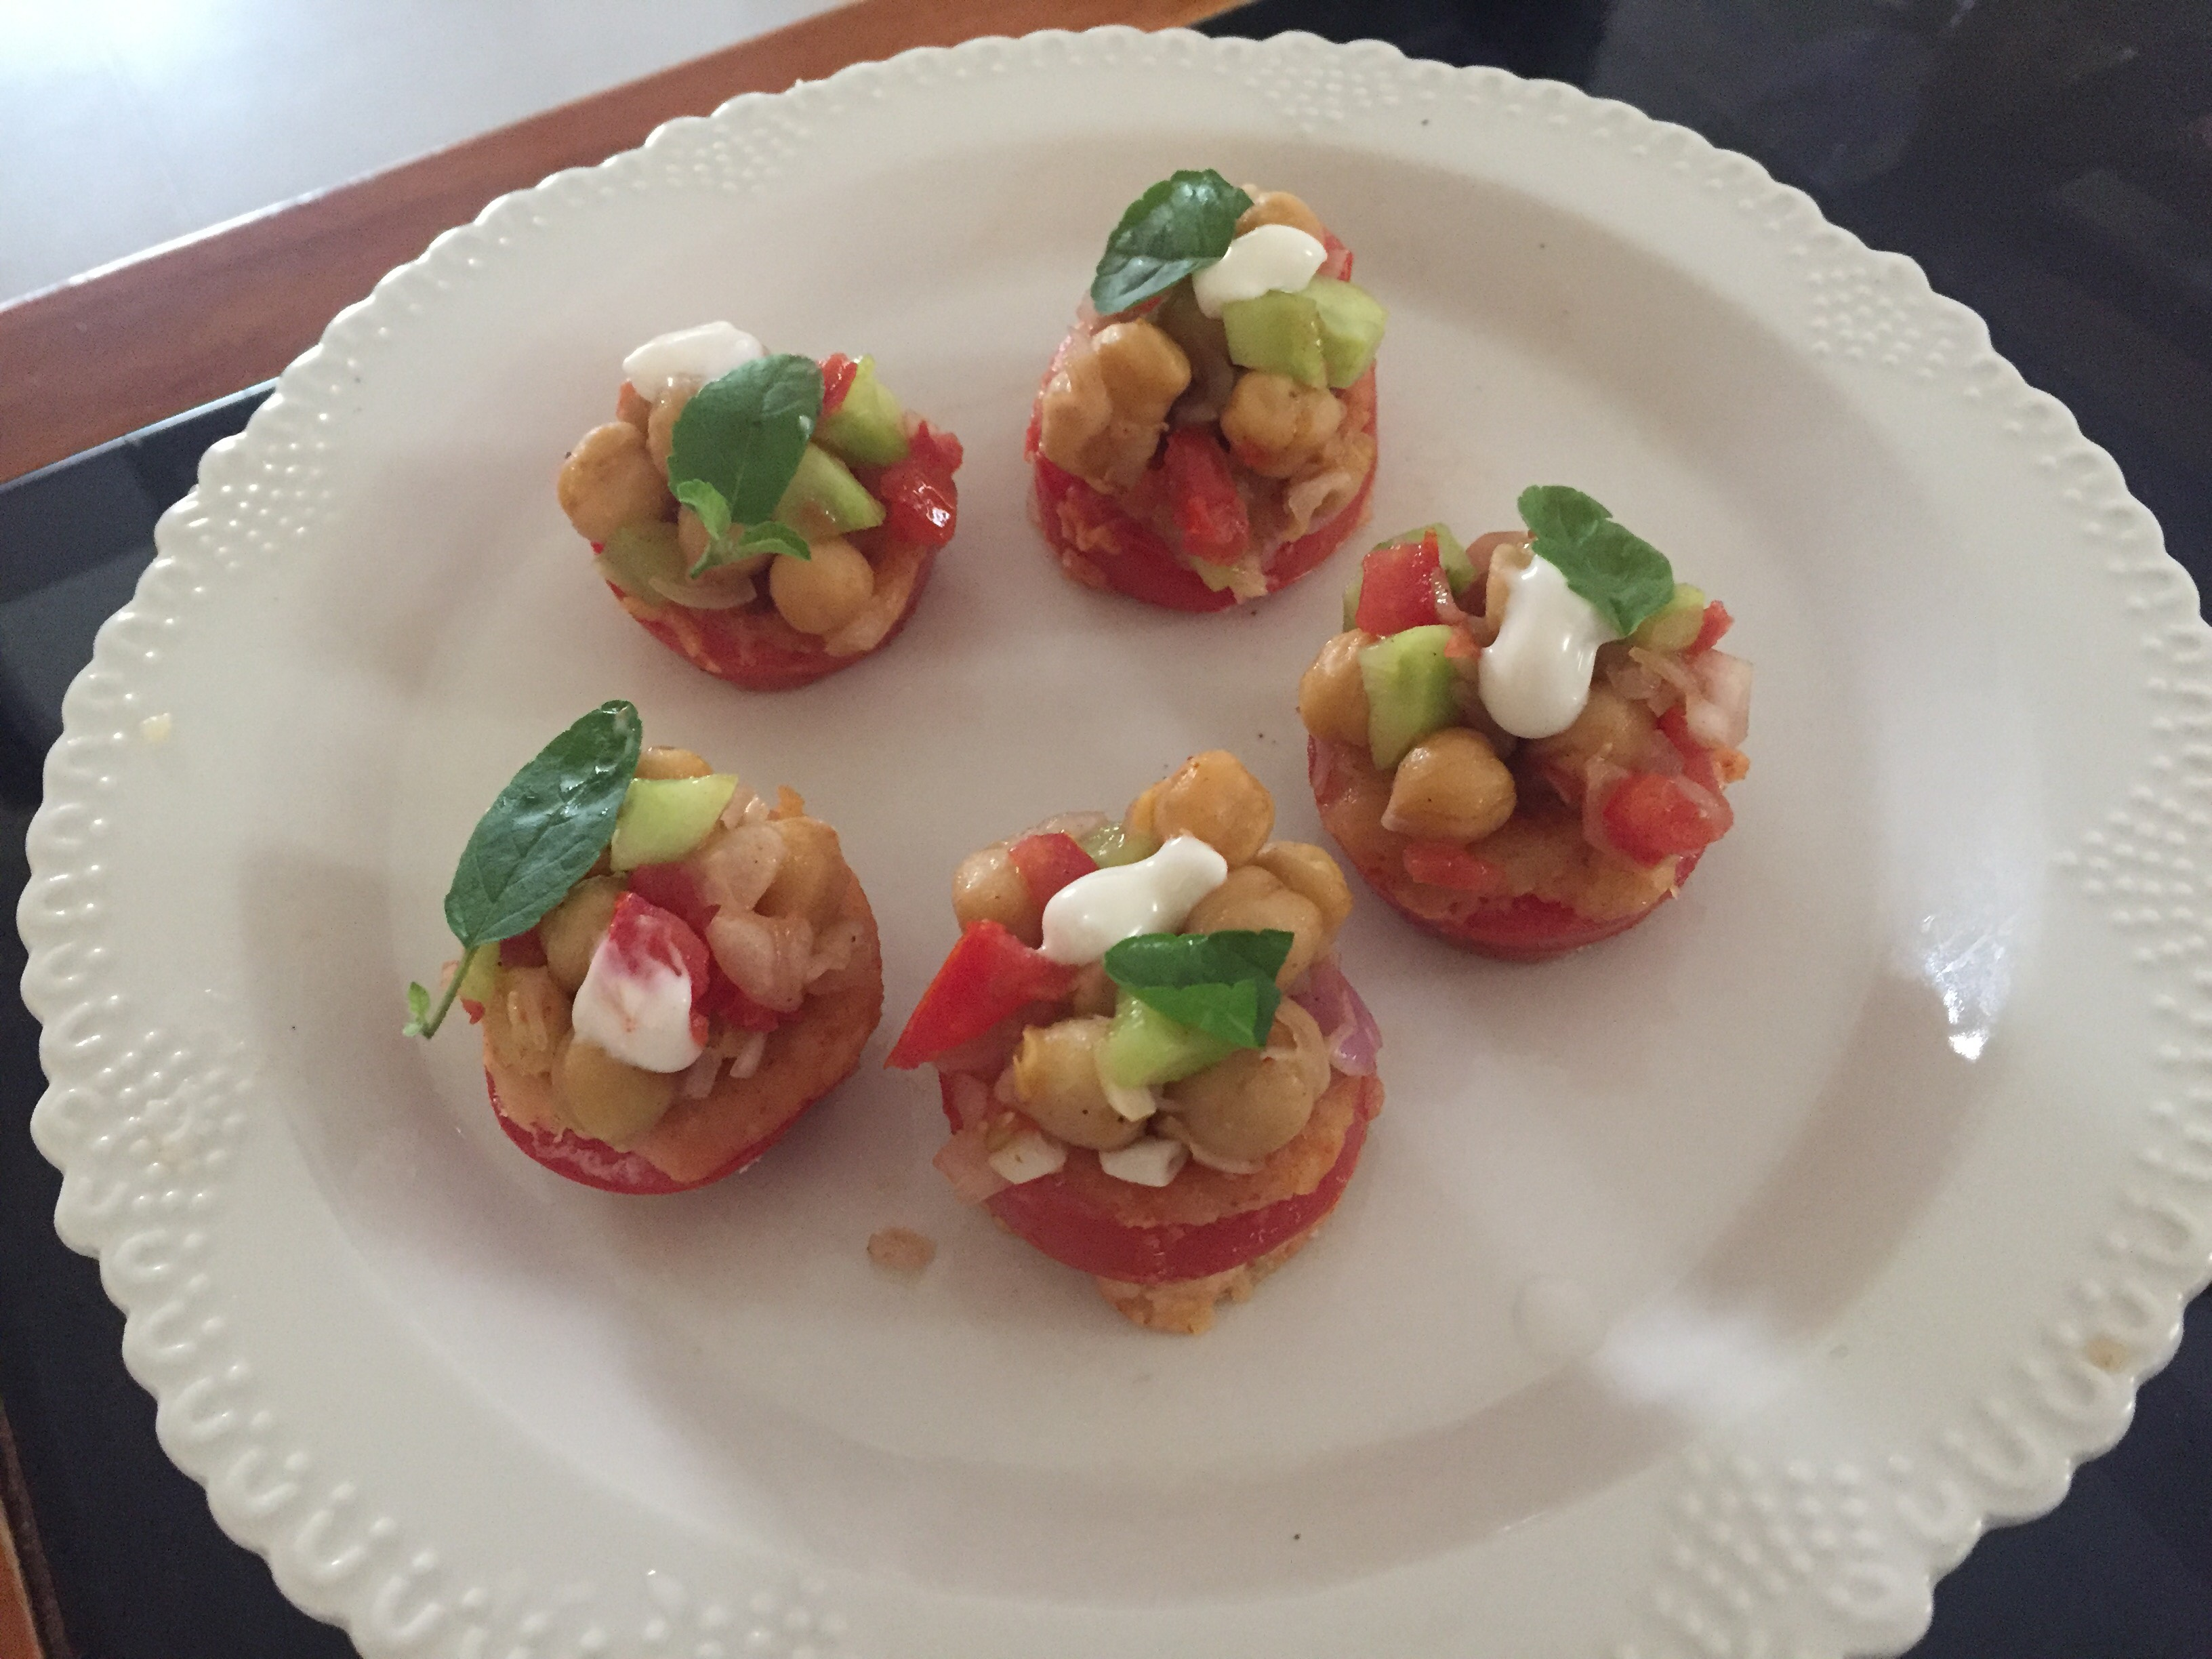 Chole chaat in ringed tomatoes